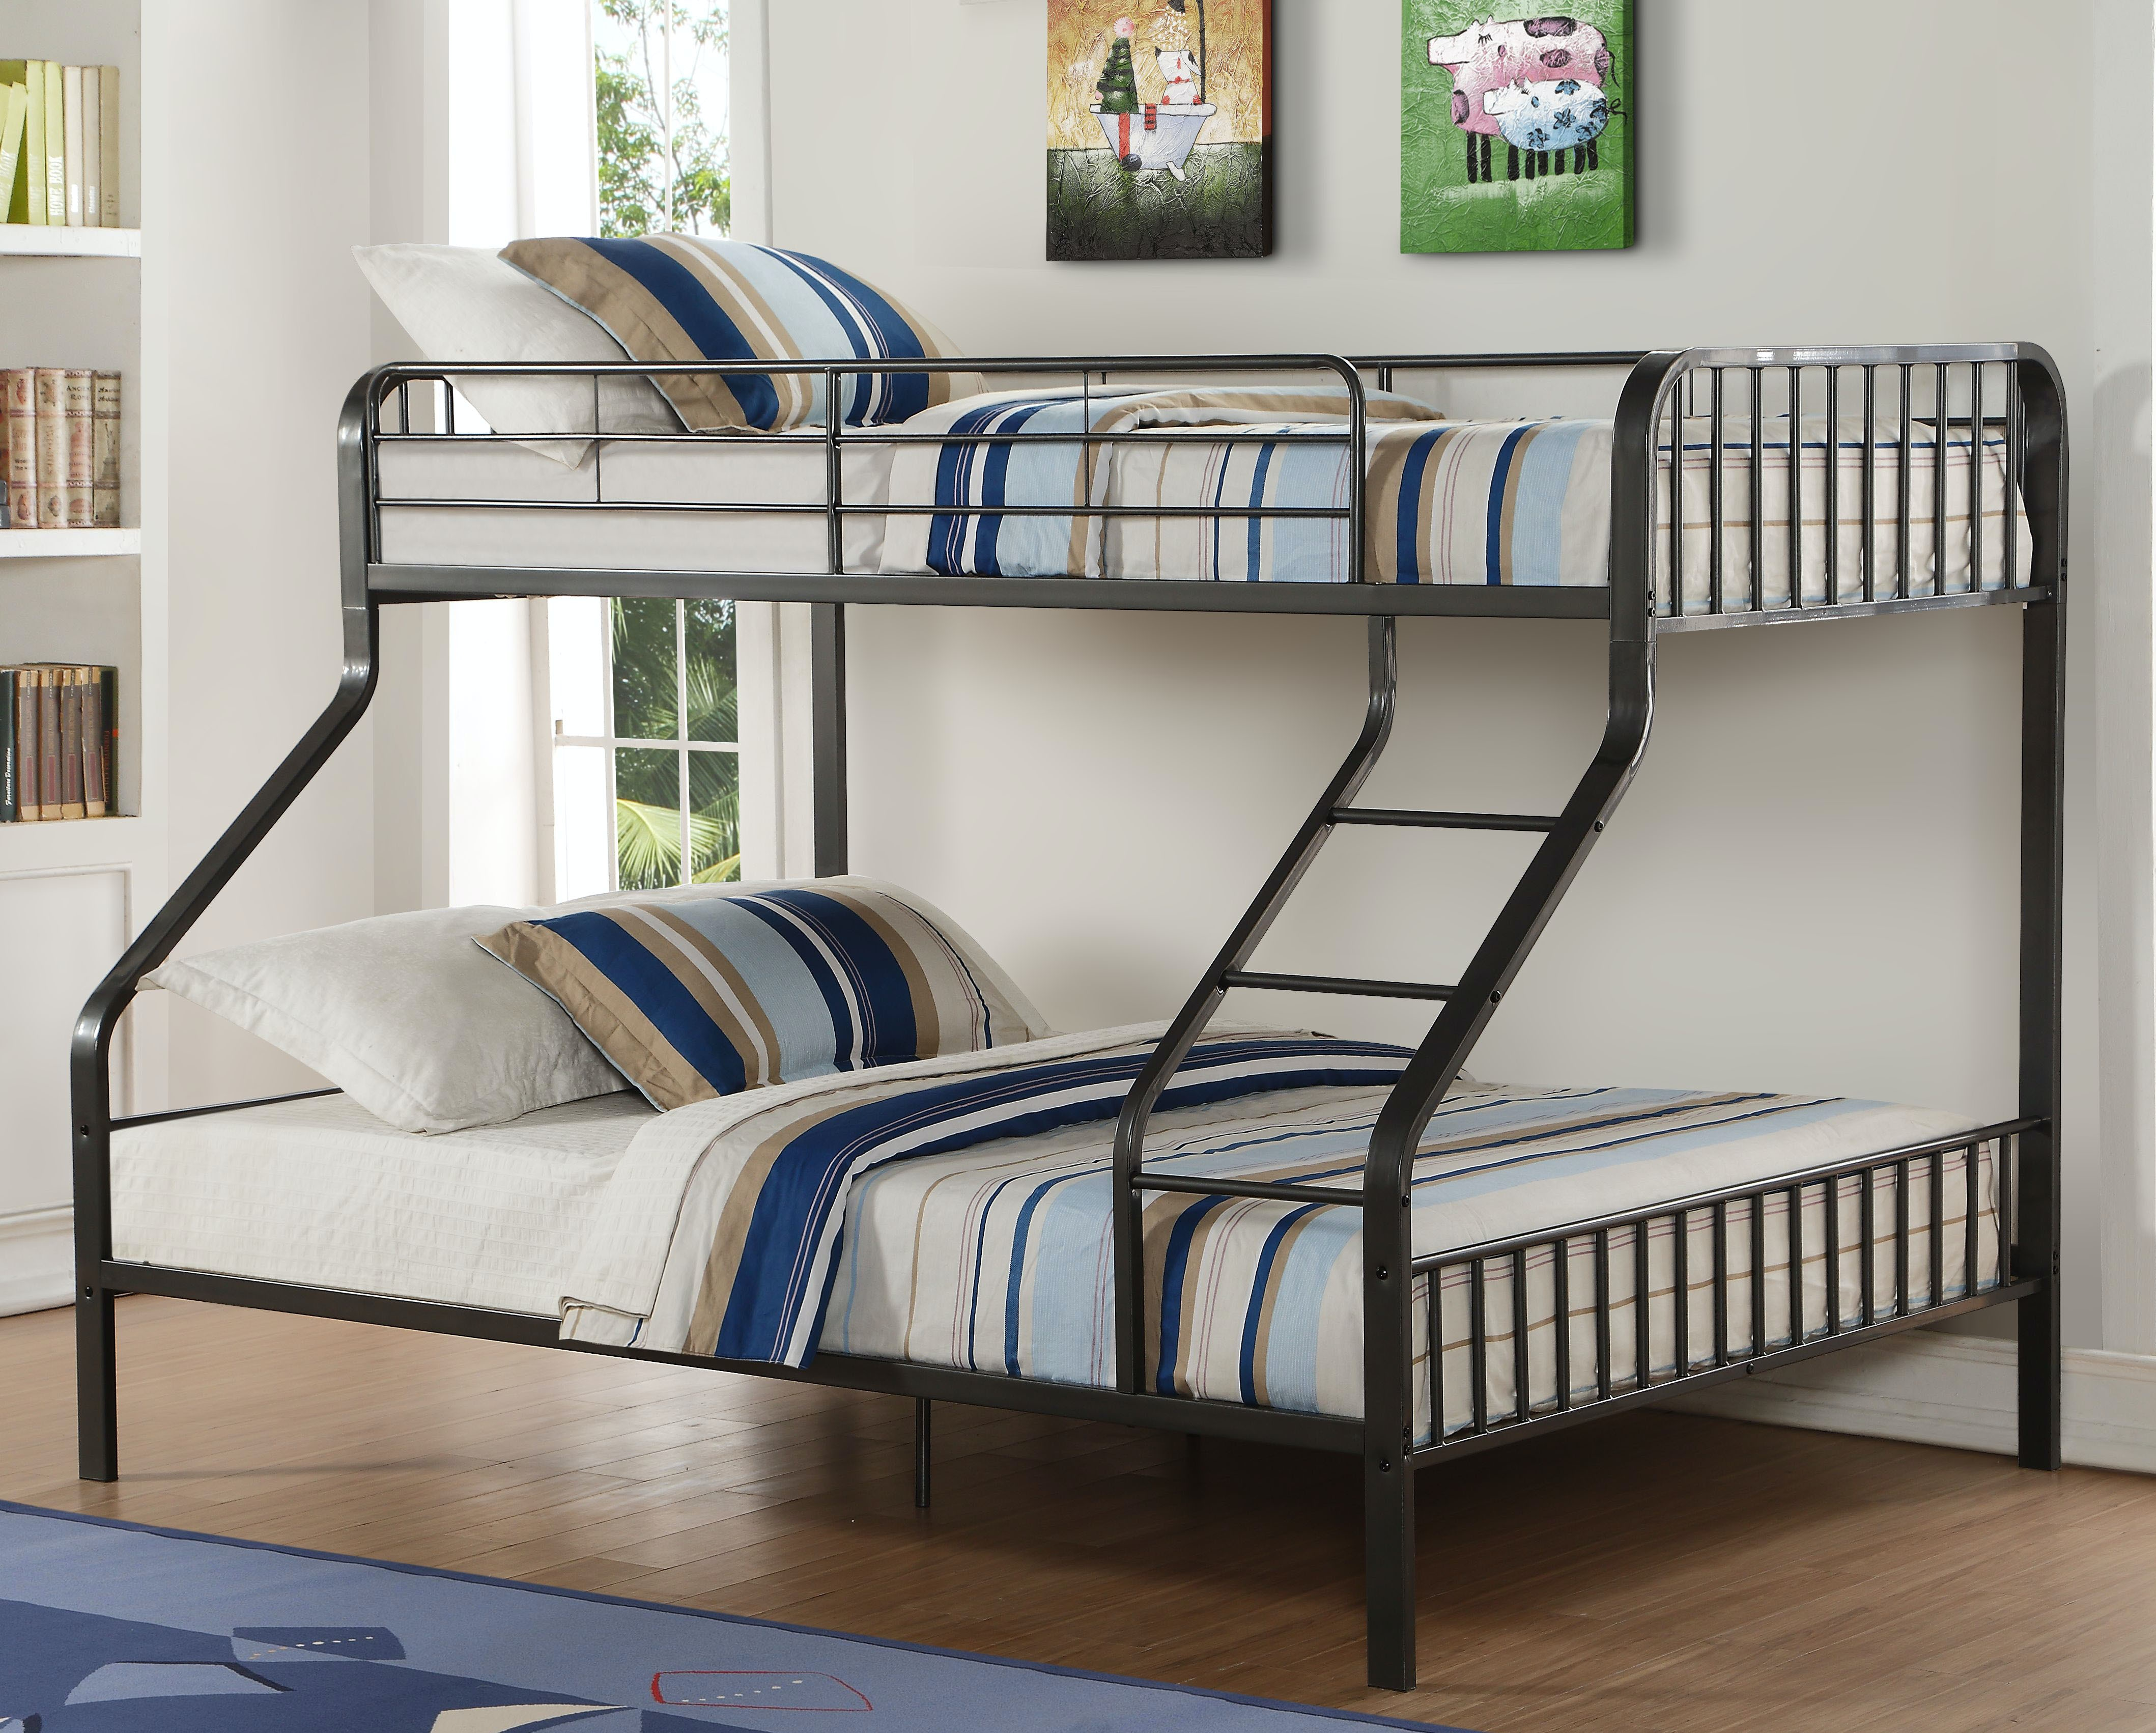 Acme Furniture Caius Twin XL Over Queen Bunk Bed 37605